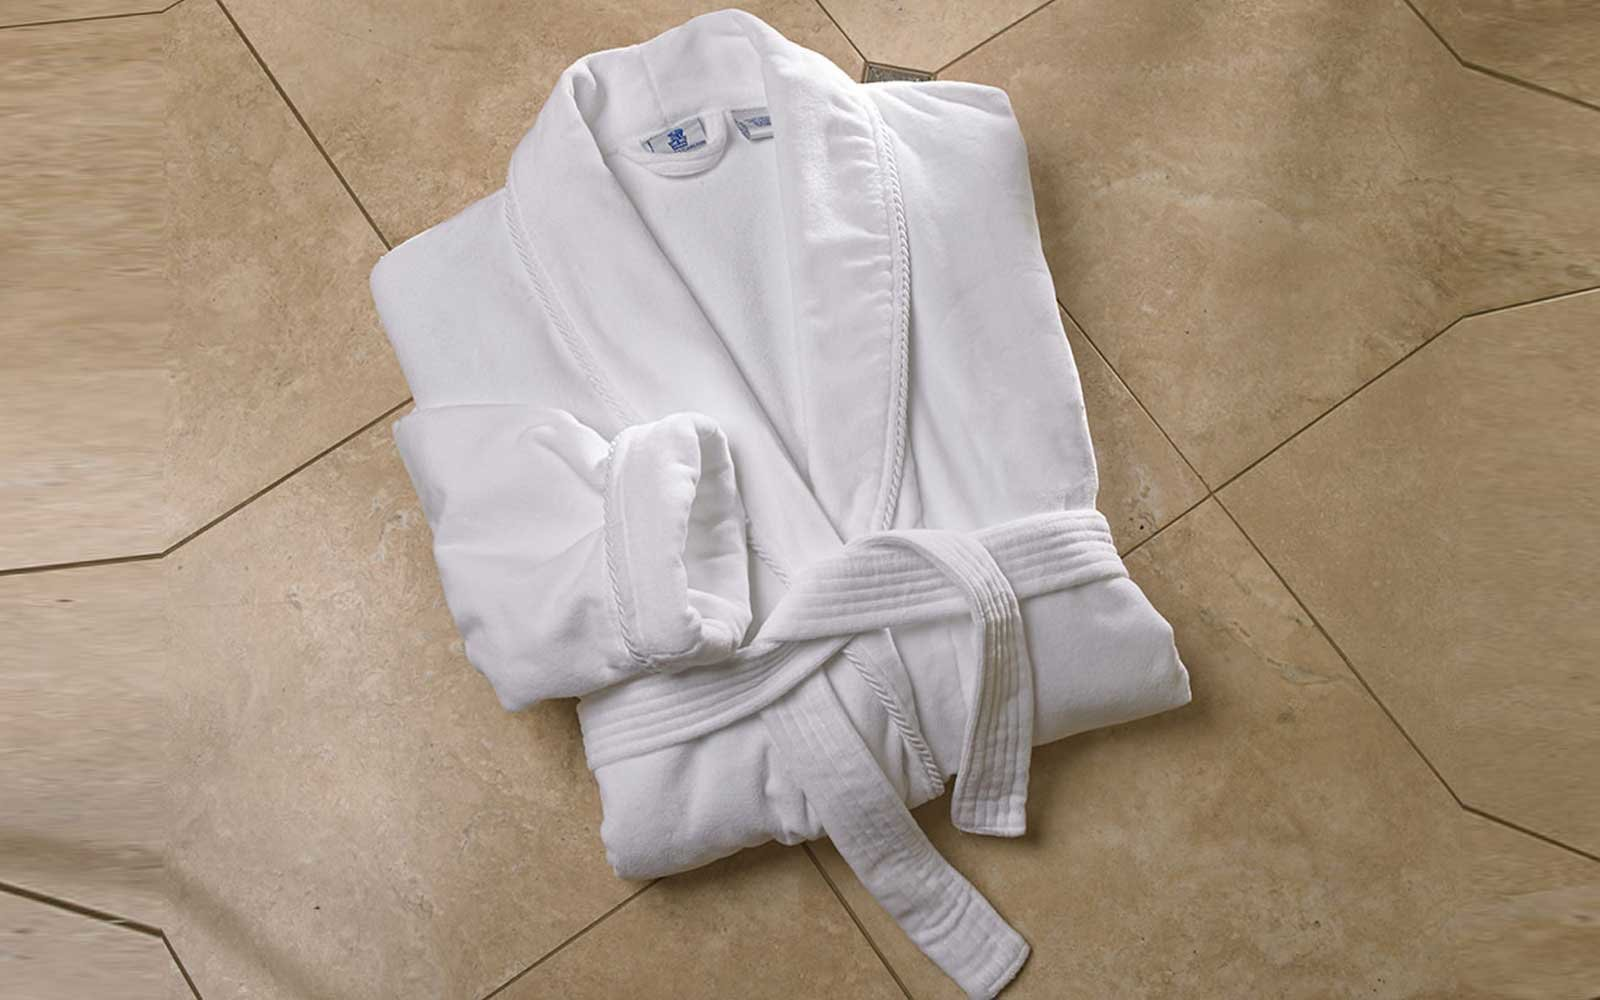 15 Luxury Hotel-quality Bathrobes You Can Buy Online | Travel + Leisure